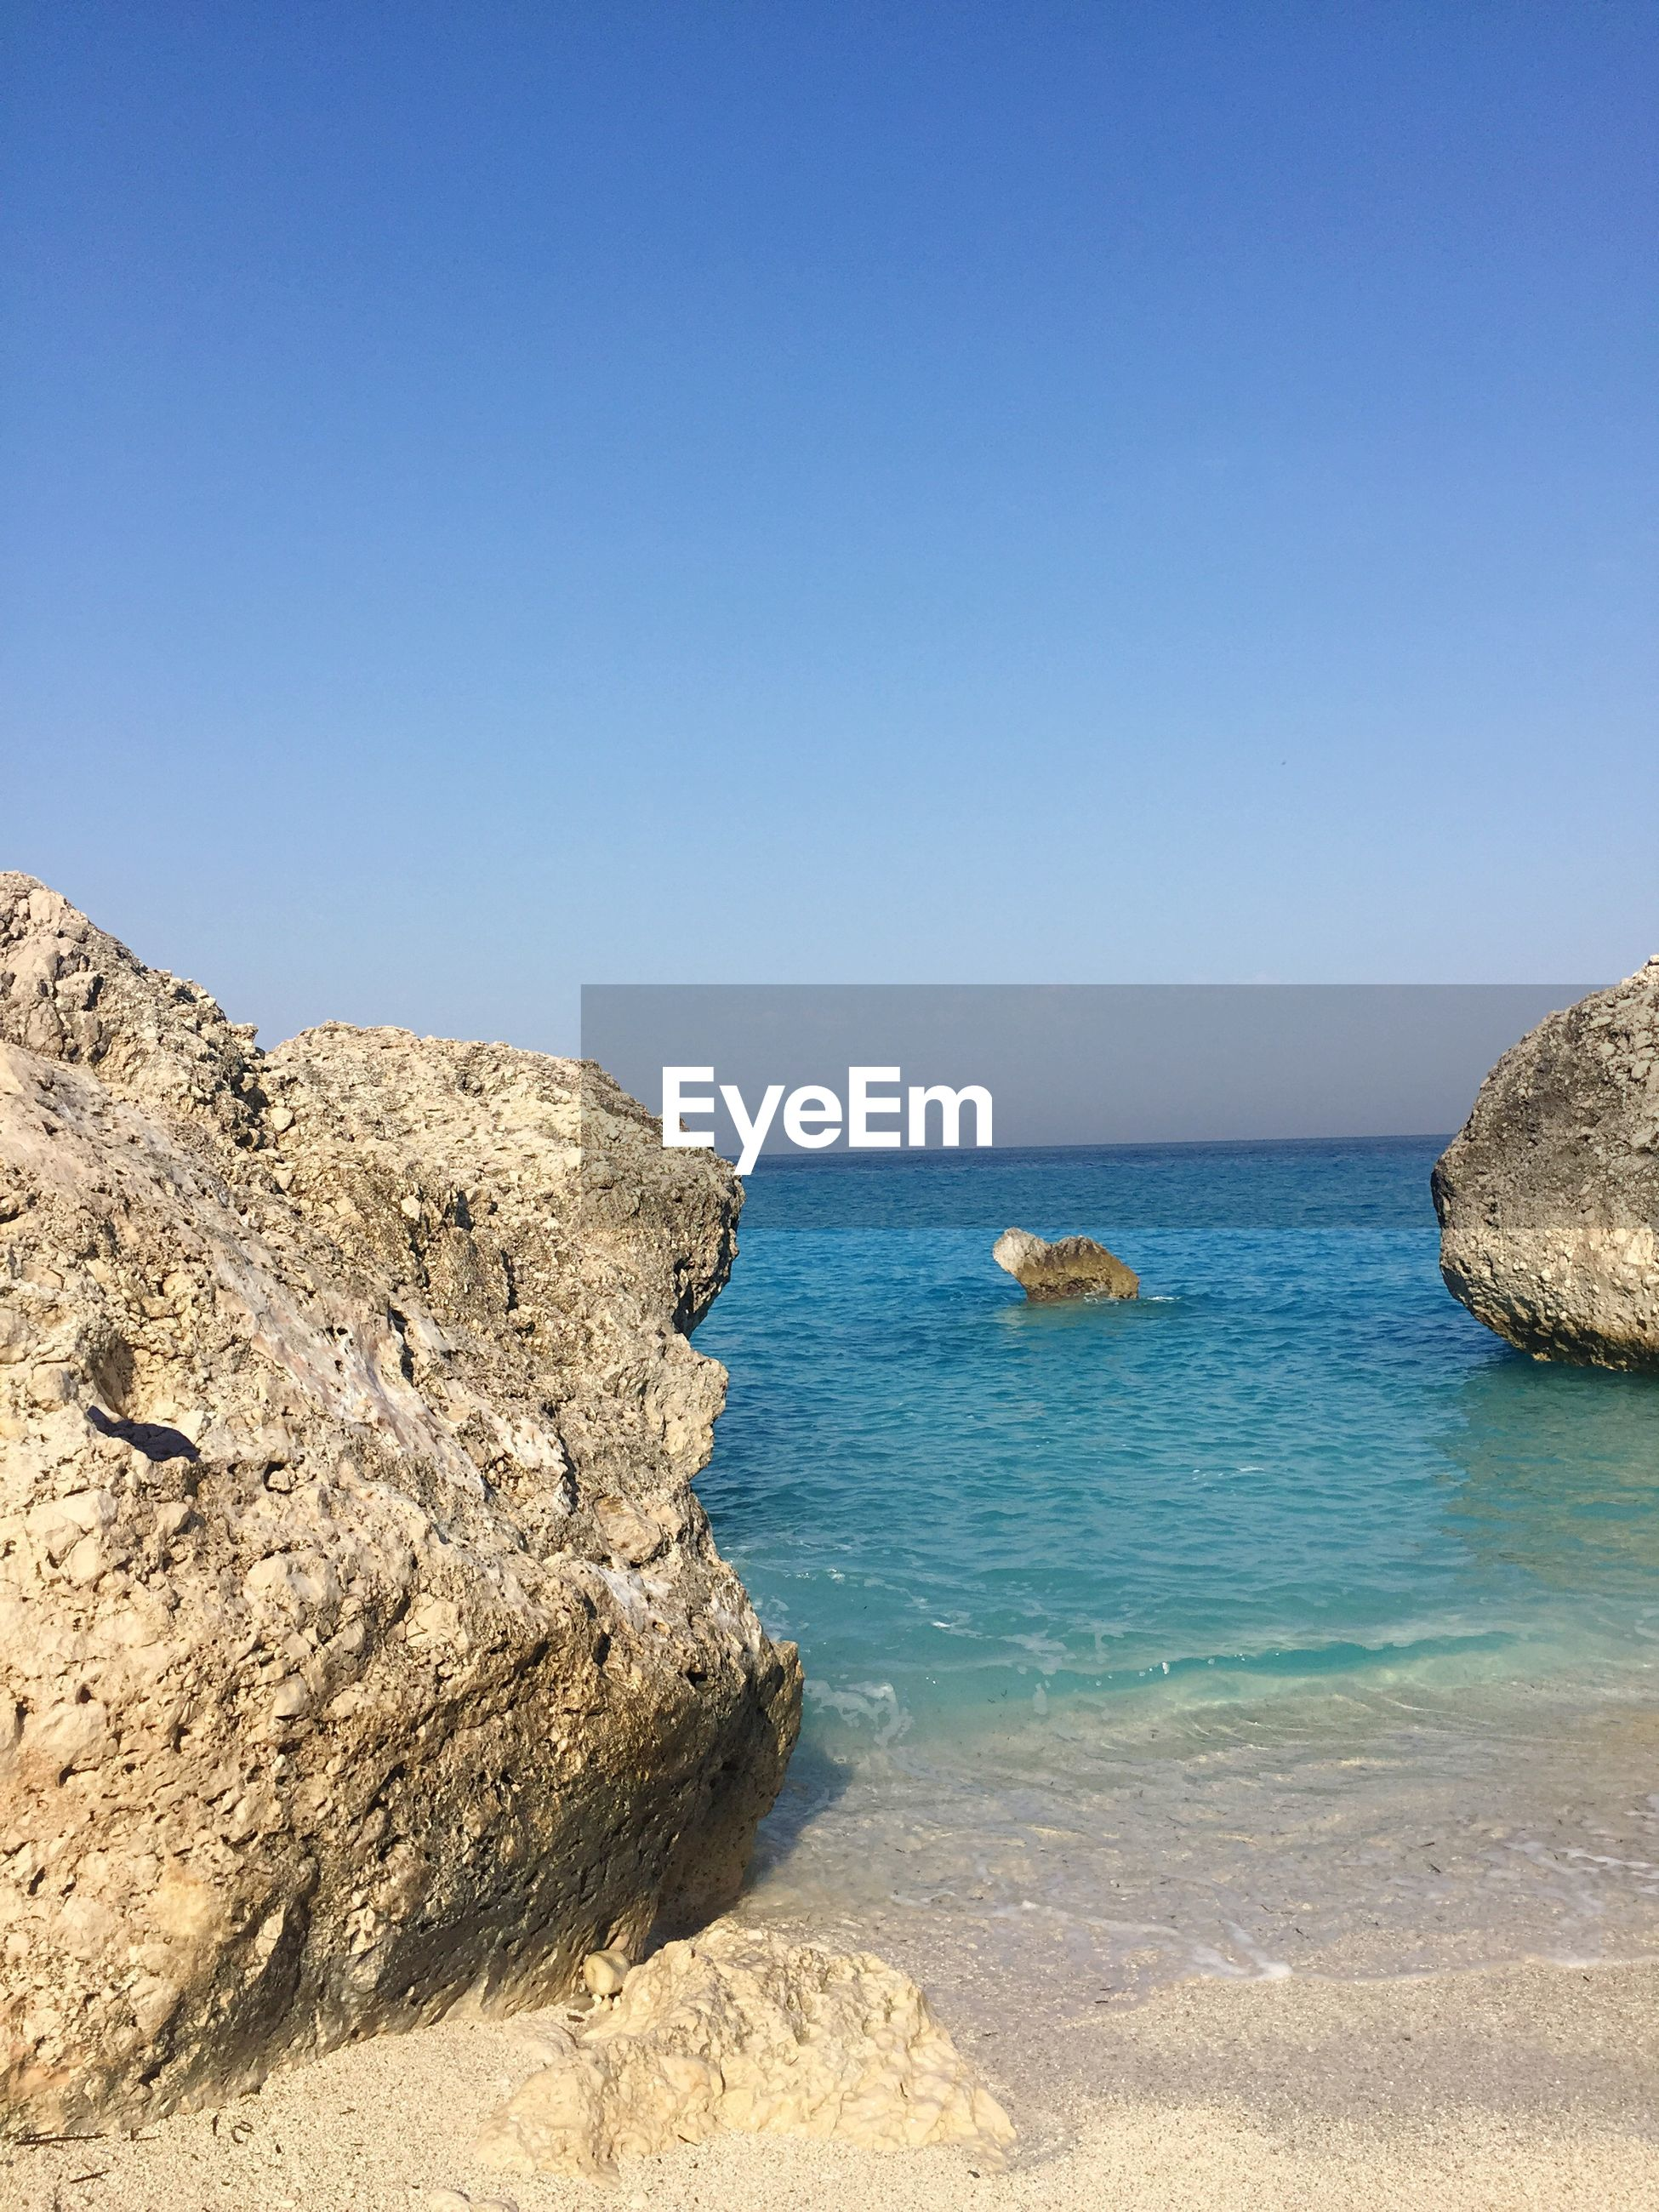 SCENIC VIEW OF ROCKS ON SEA AGAINST CLEAR BLUE SKY